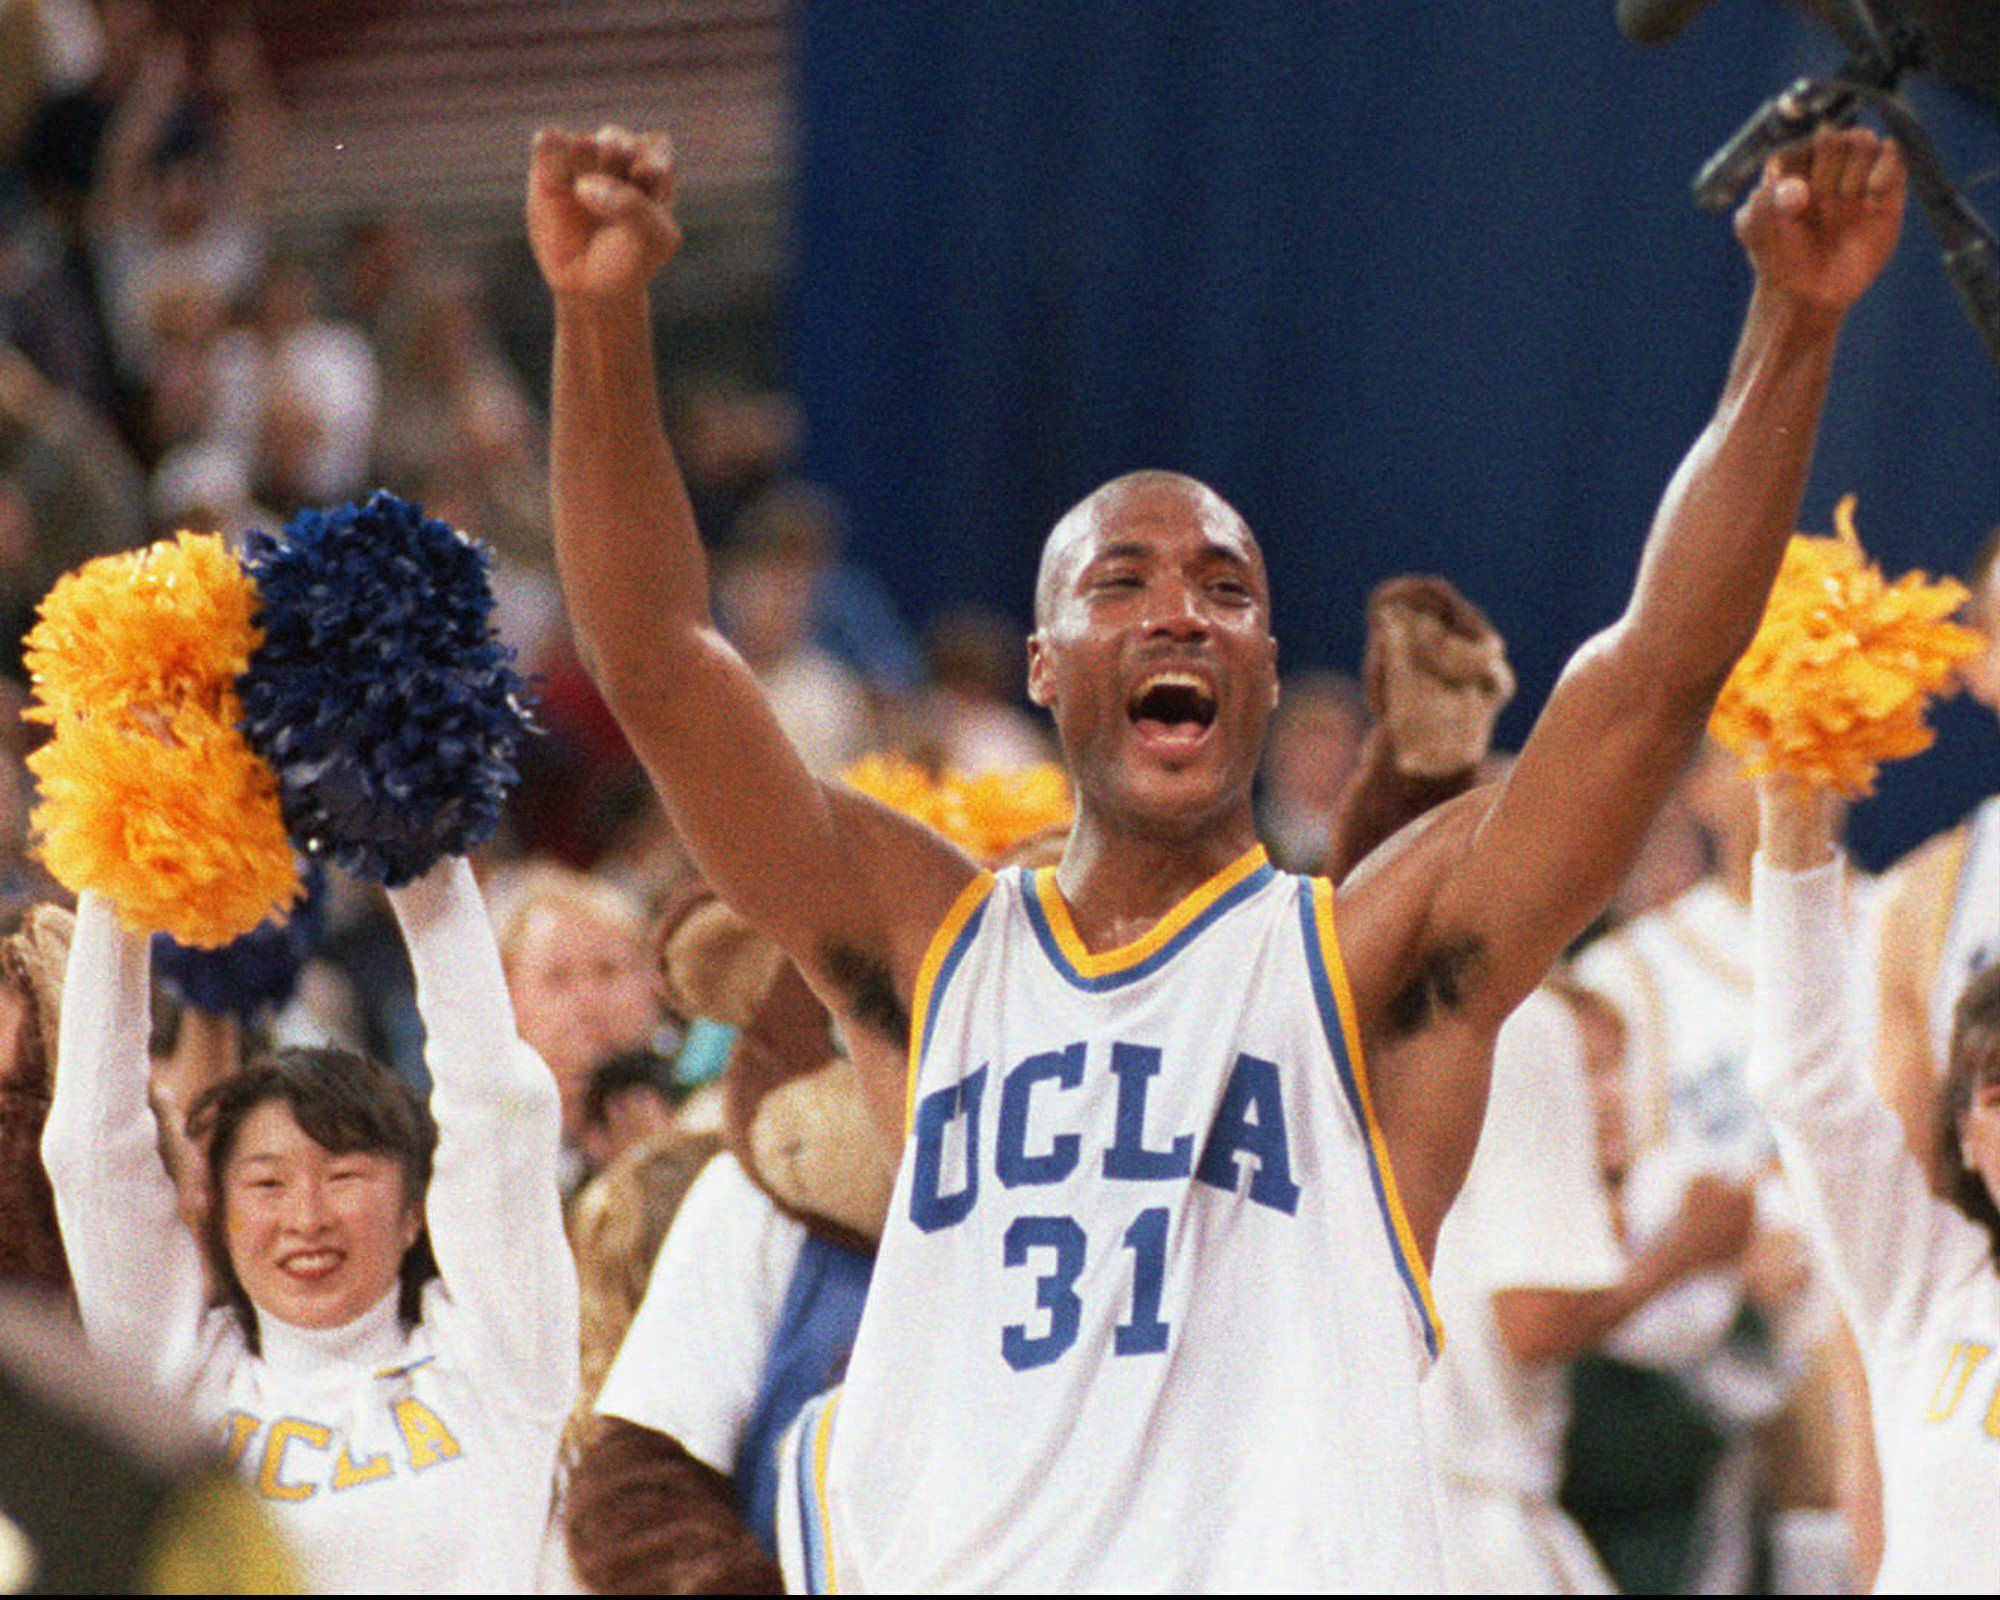 UCLA's Ed O'Bannon, shown here celebrating after his team won the NCAA championship game in 1995 against Arkansas, has waited five years for his antitrust lawsuit against the NCAA to go to trial.